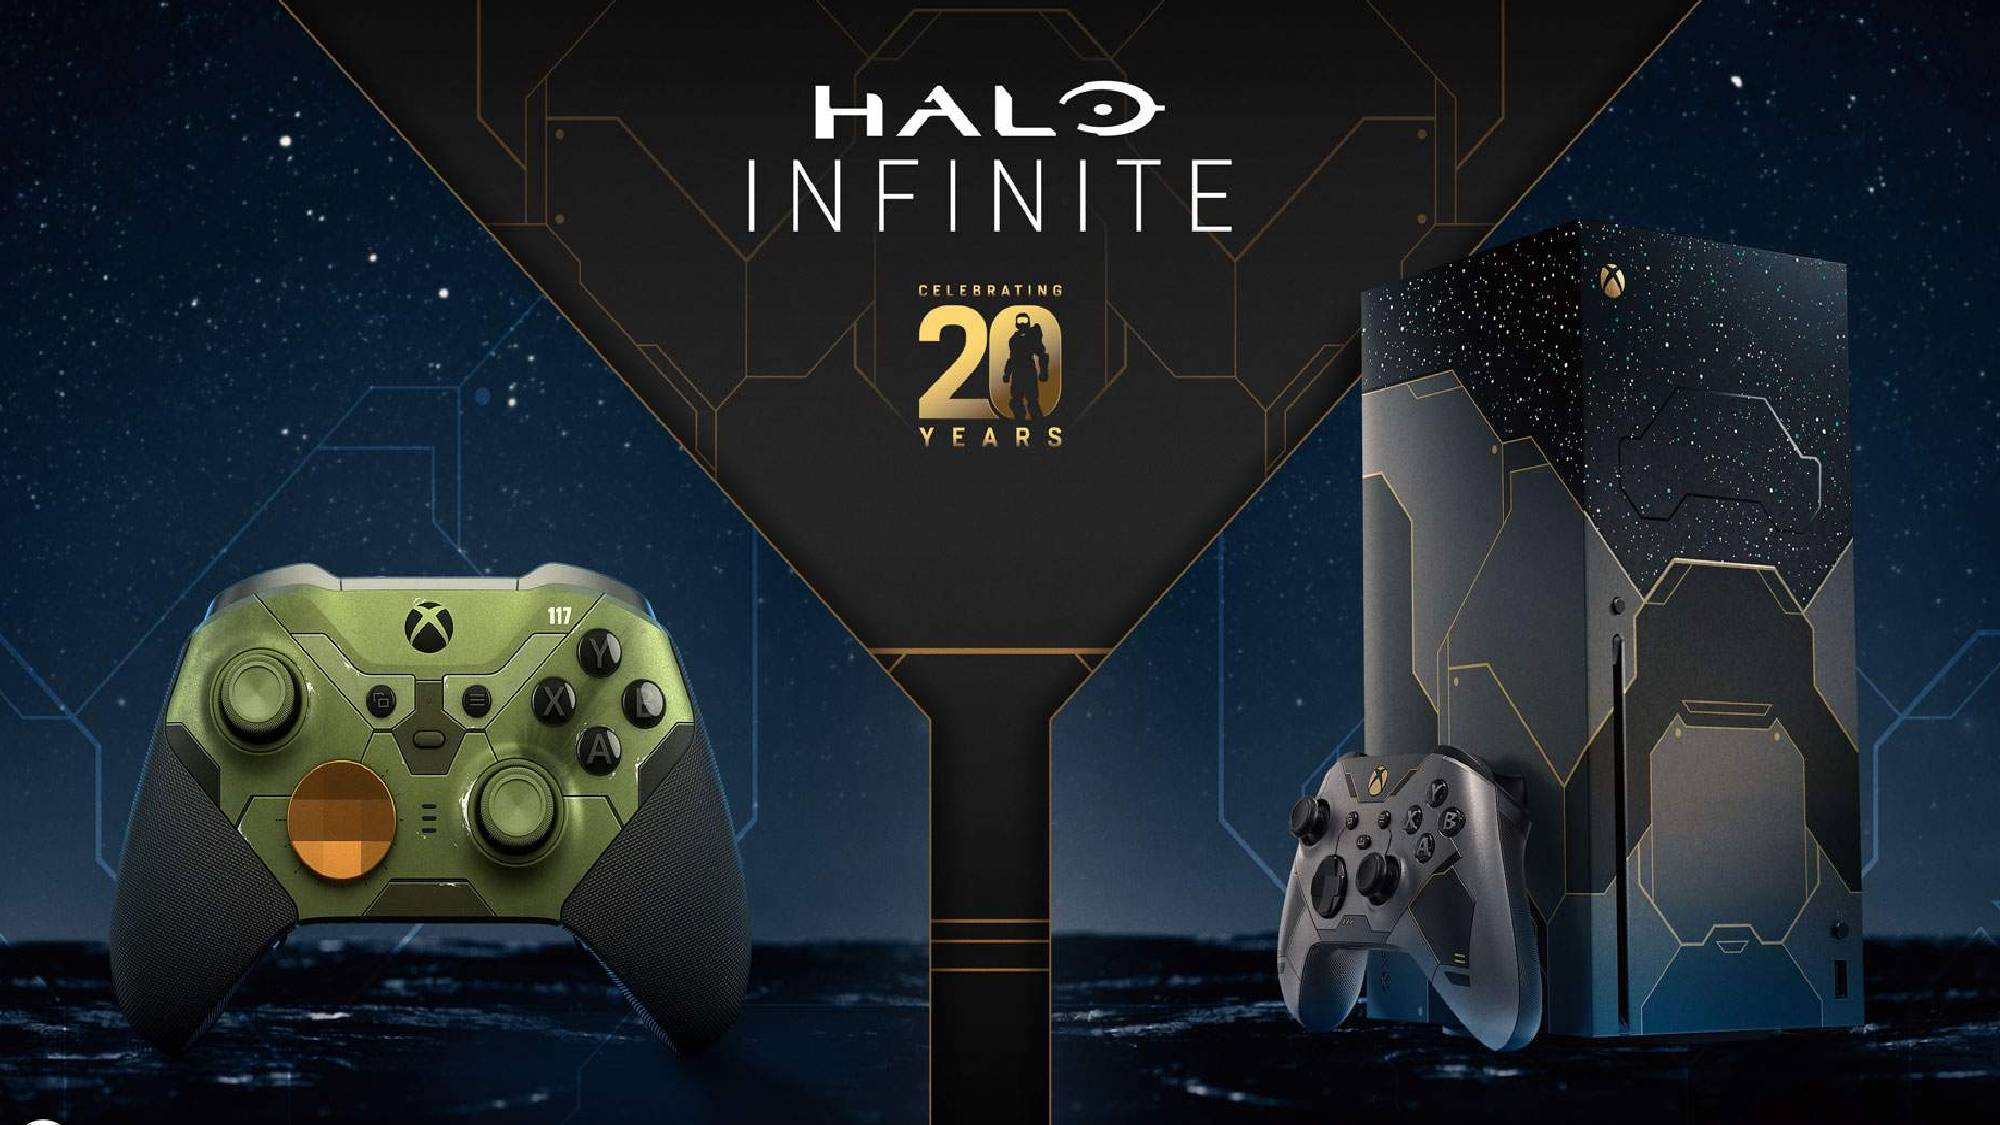 Halo Infinite Xbox Series X console: GameStop opens its pre-orders today, but there's a caveat